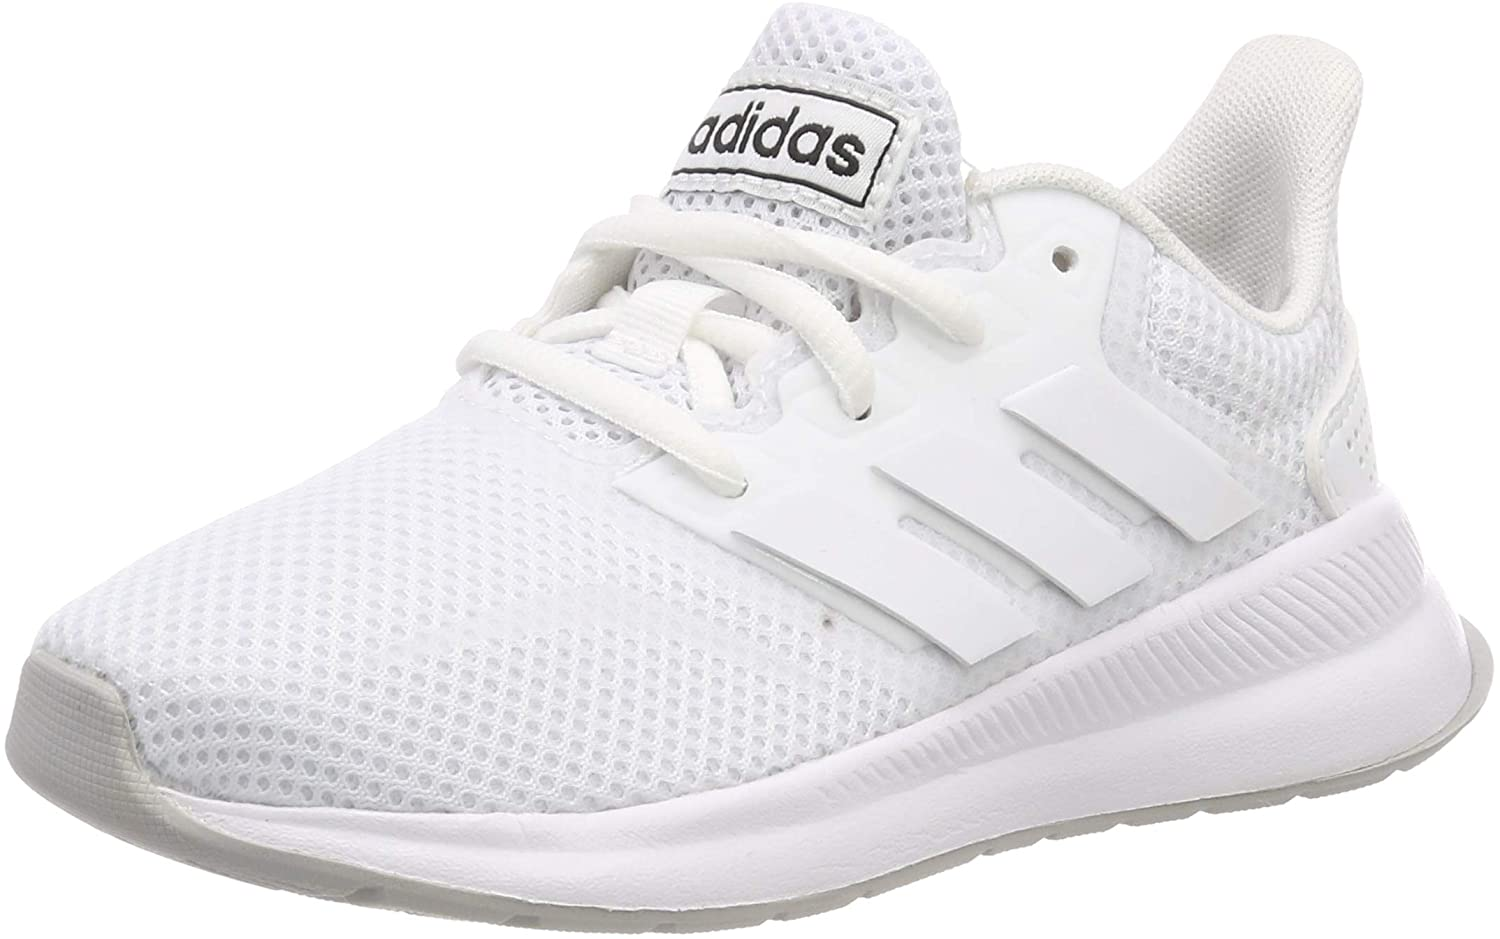 adidas Unisex Kid's Falcon K Running Shoes, White (Ftwr White/Grey Two F17), 12.5K UK Child (31 EU)